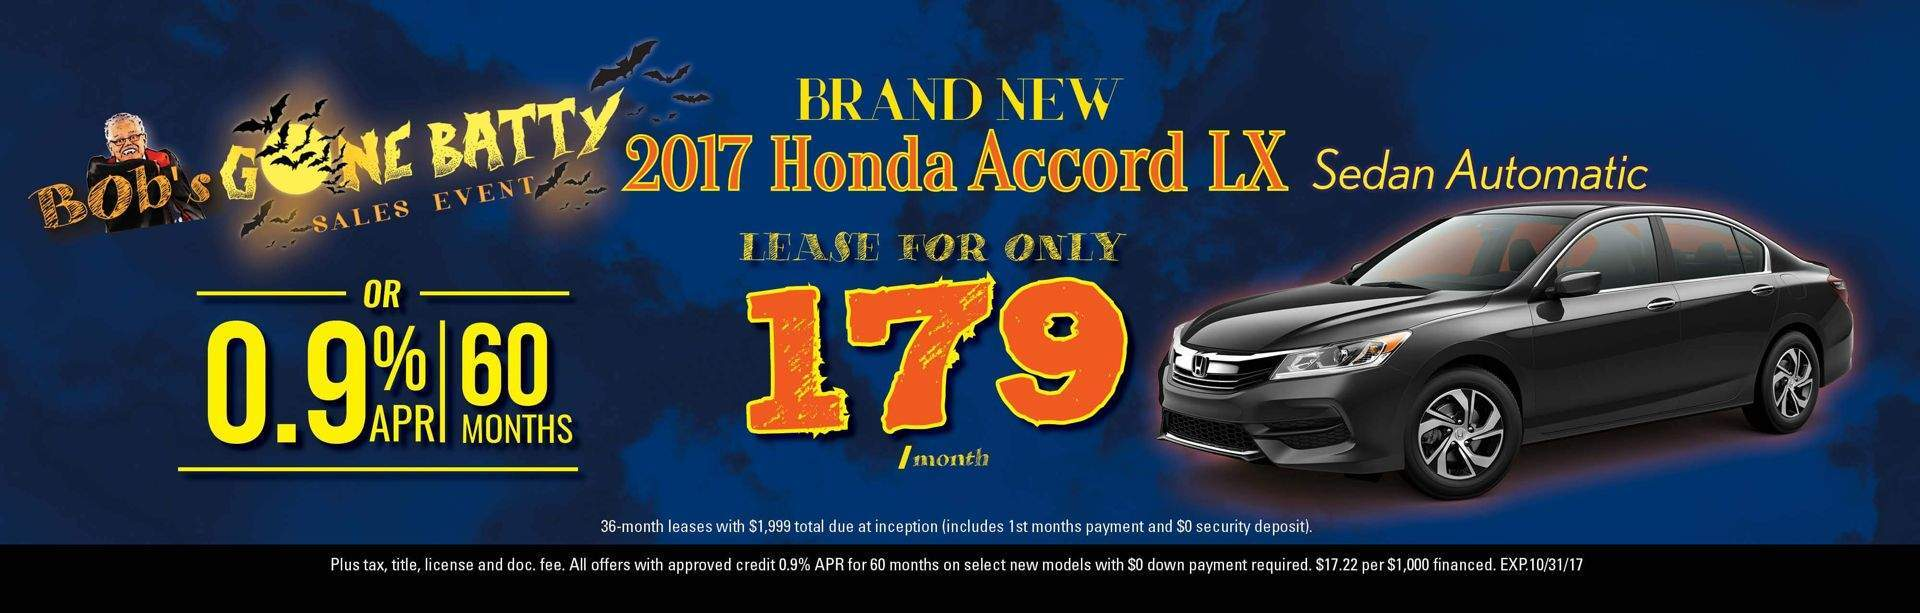 2017 ACCORD LEASE SPECIAL OCTOBER